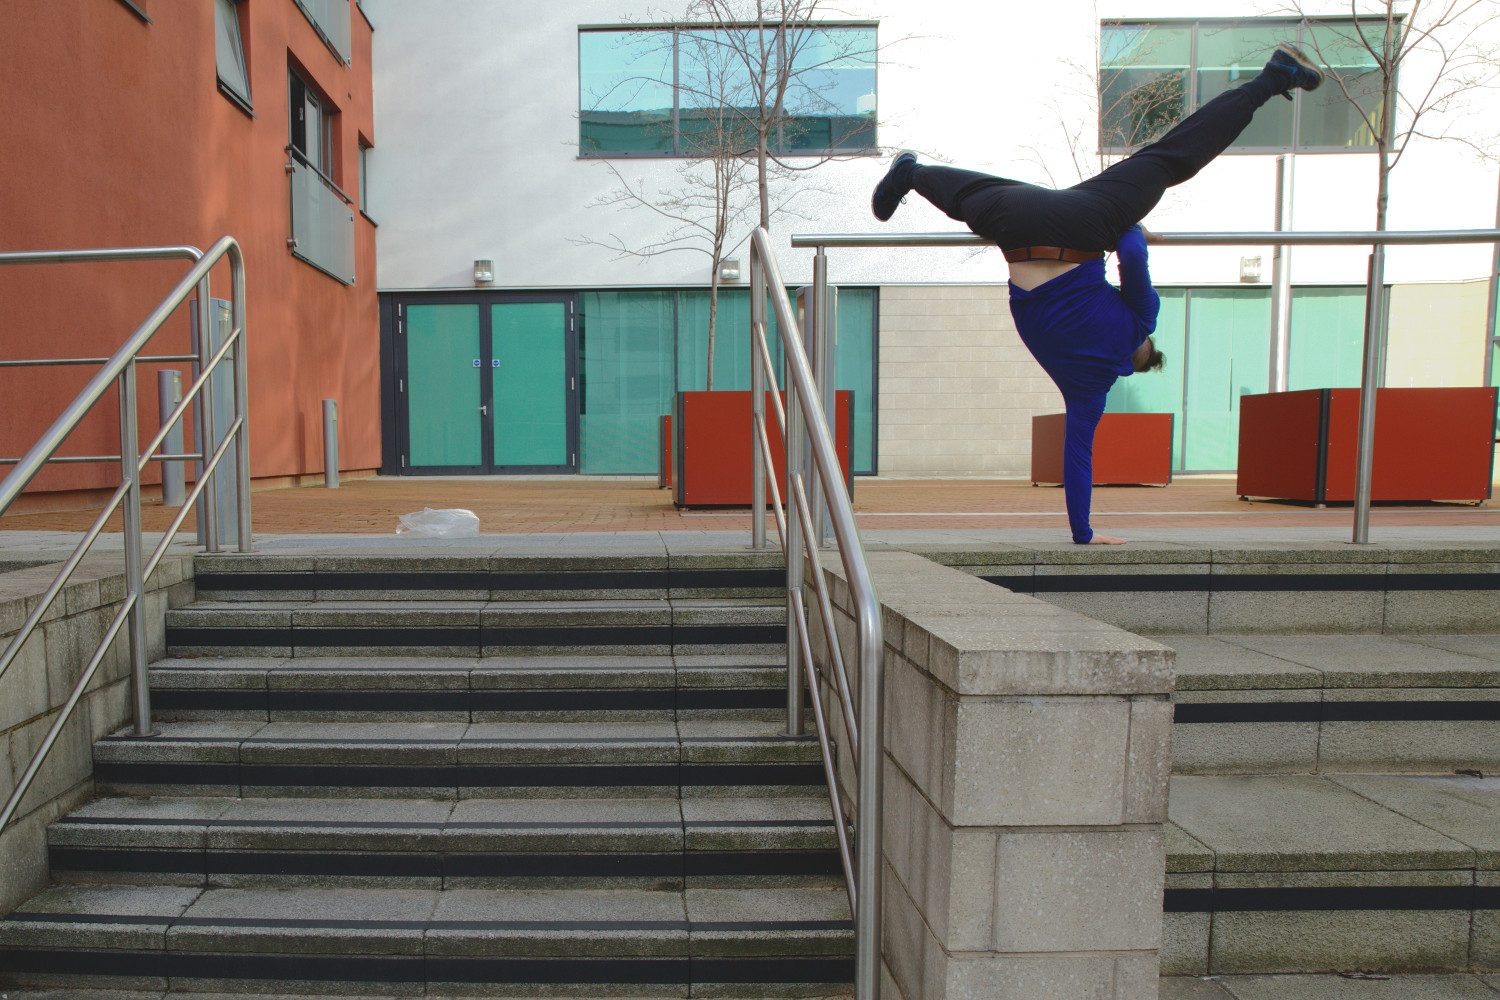 Ian Dolan, man contemporary dancing in the street on steps